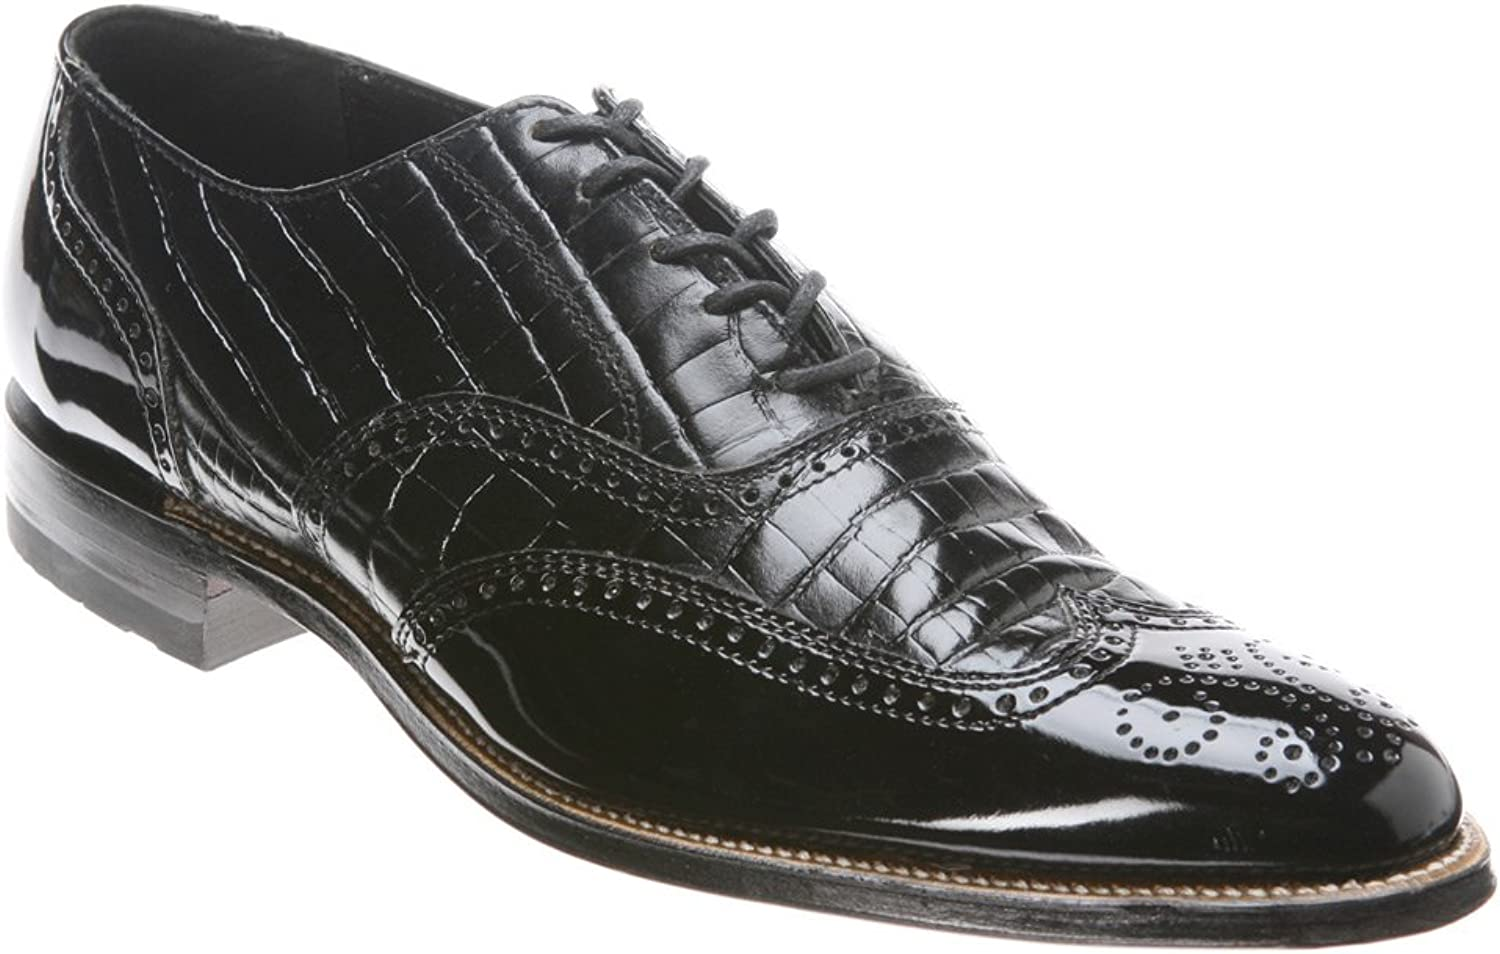 STACY ADAMS Men's Dayton 00267 Oxfords shoes